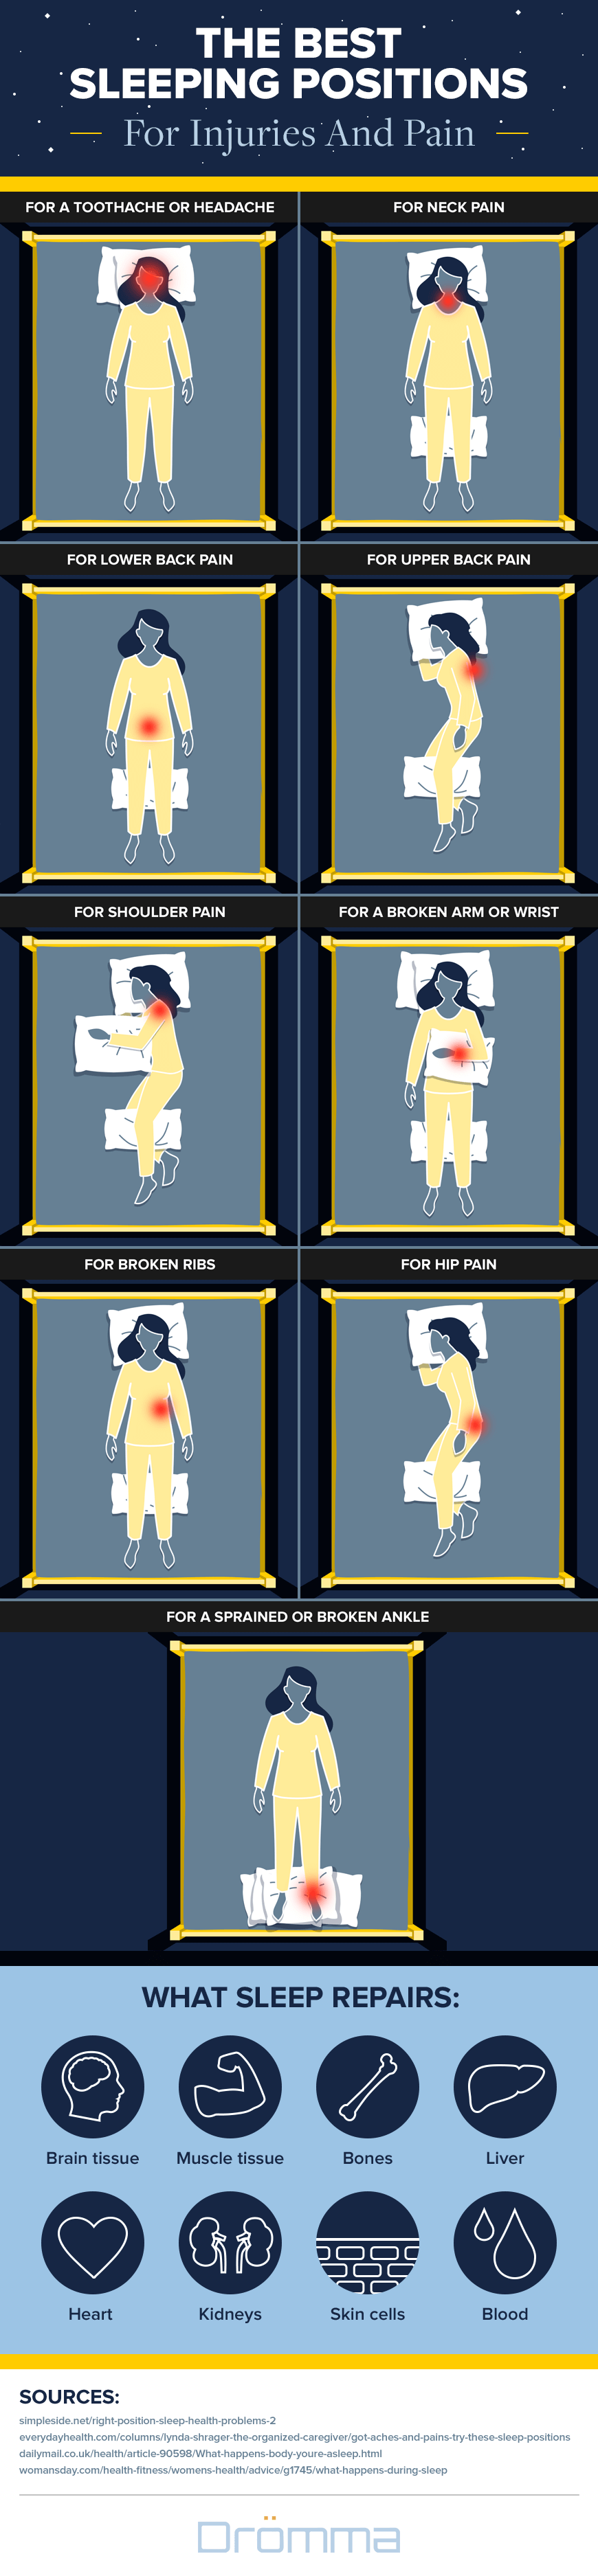 sleeping positions for injuries infographic